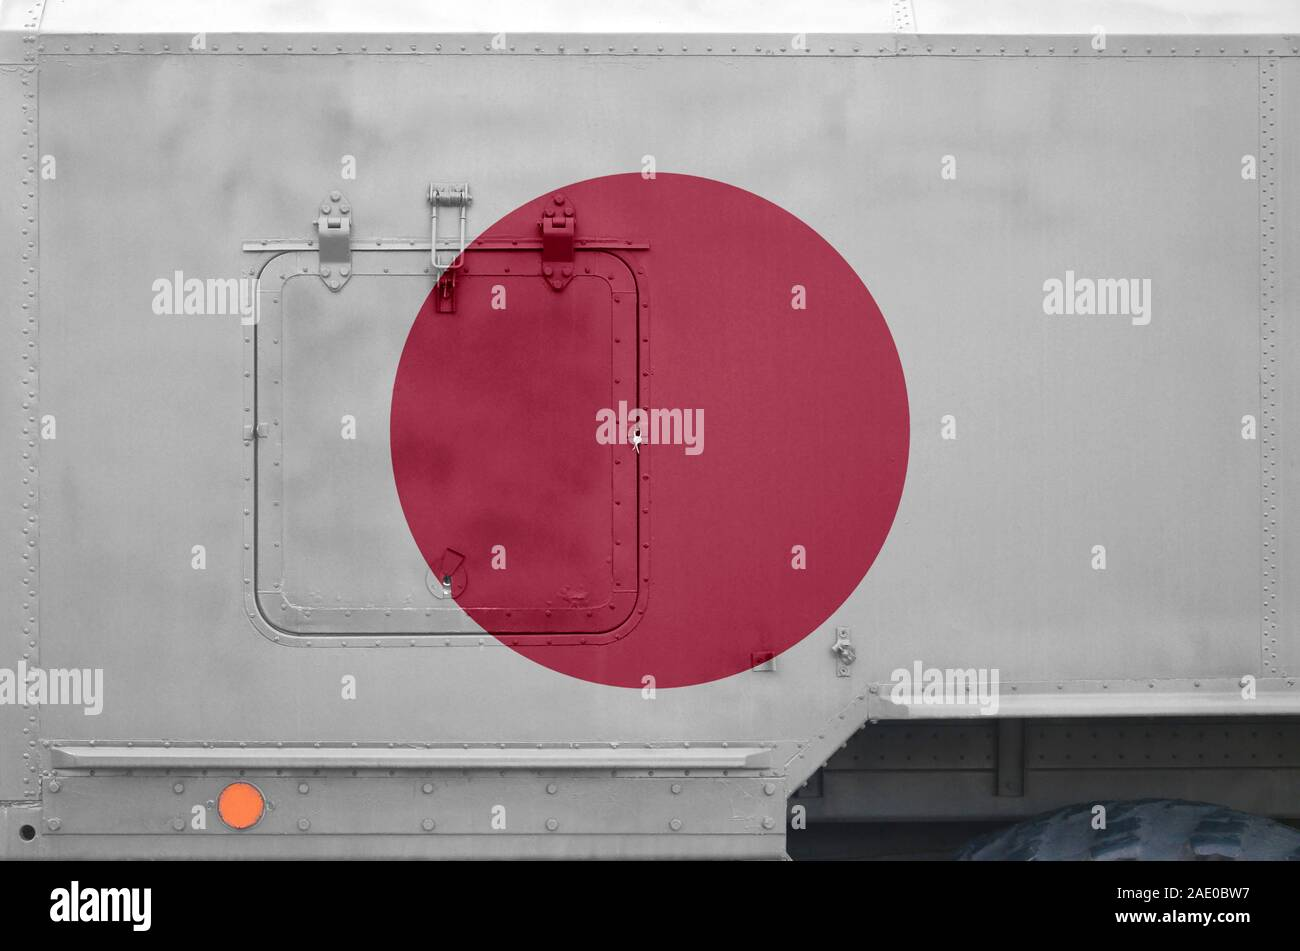 Japan flag depicted on side part of military armored truck close up. Army forces vehicle conceptual background Stock Photo